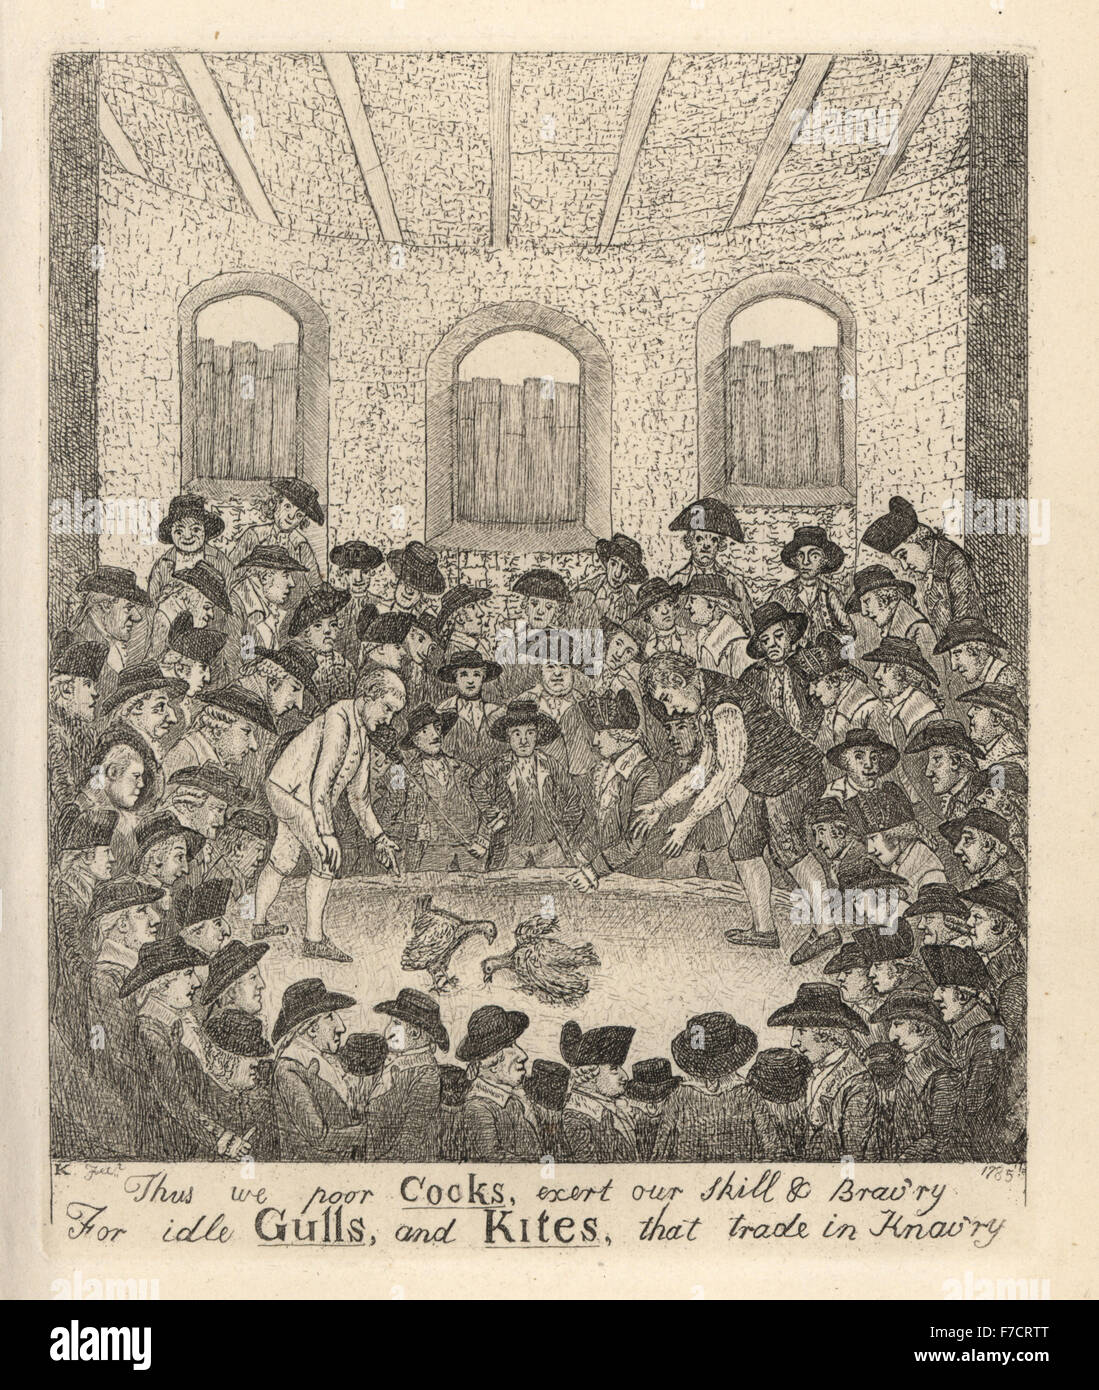 Cockfighting match between Lanark and Haddington counties, 1785, in front of an audience of nobles and knaves including - Stock Image